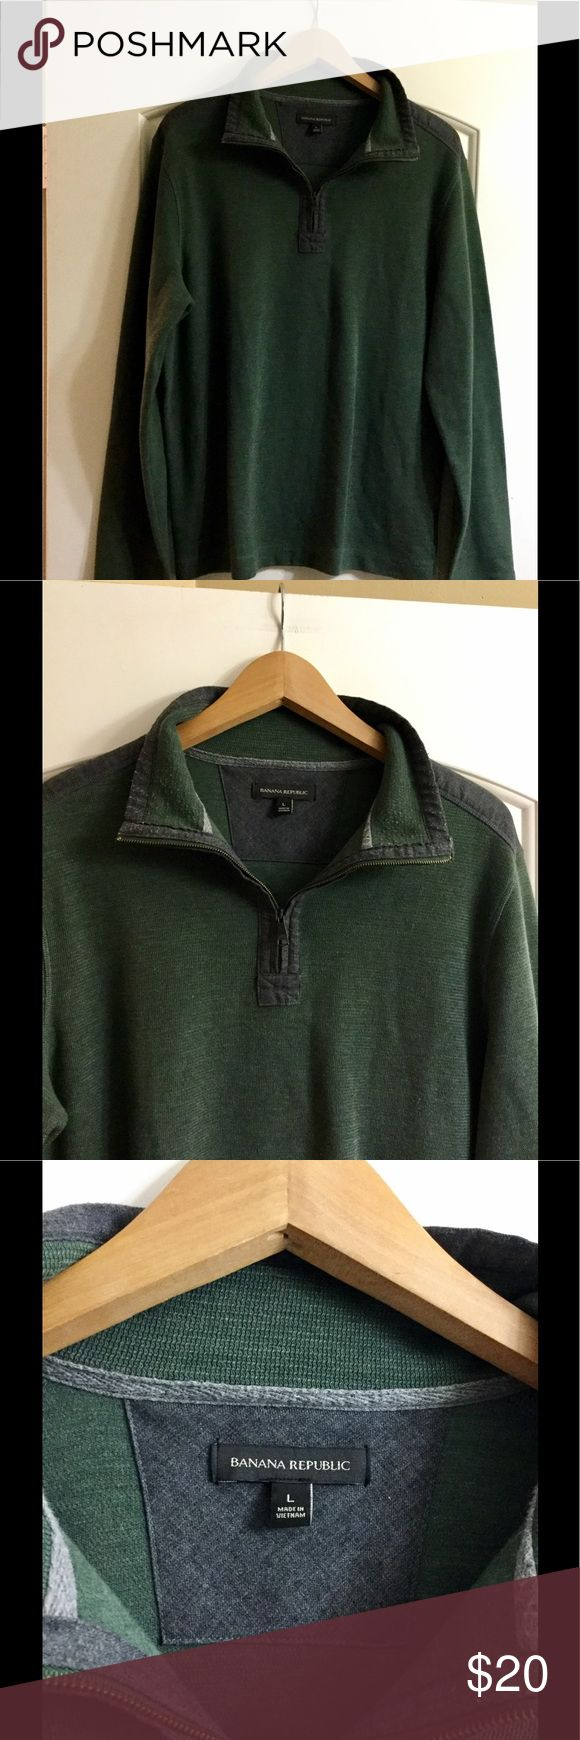 Men's Banana Republic forest green&Gray half zip L From Banana Republic Men's Large, forest greeen with gray accents, this is a men's pullover half zip sweater from banana republic. Worn once, excellent condition! Says banana republic on the zipper! Very nice, soft, comfortable, and warm for winter! Dress it up or dress it down! Banana Republic Sweaters Zip Up